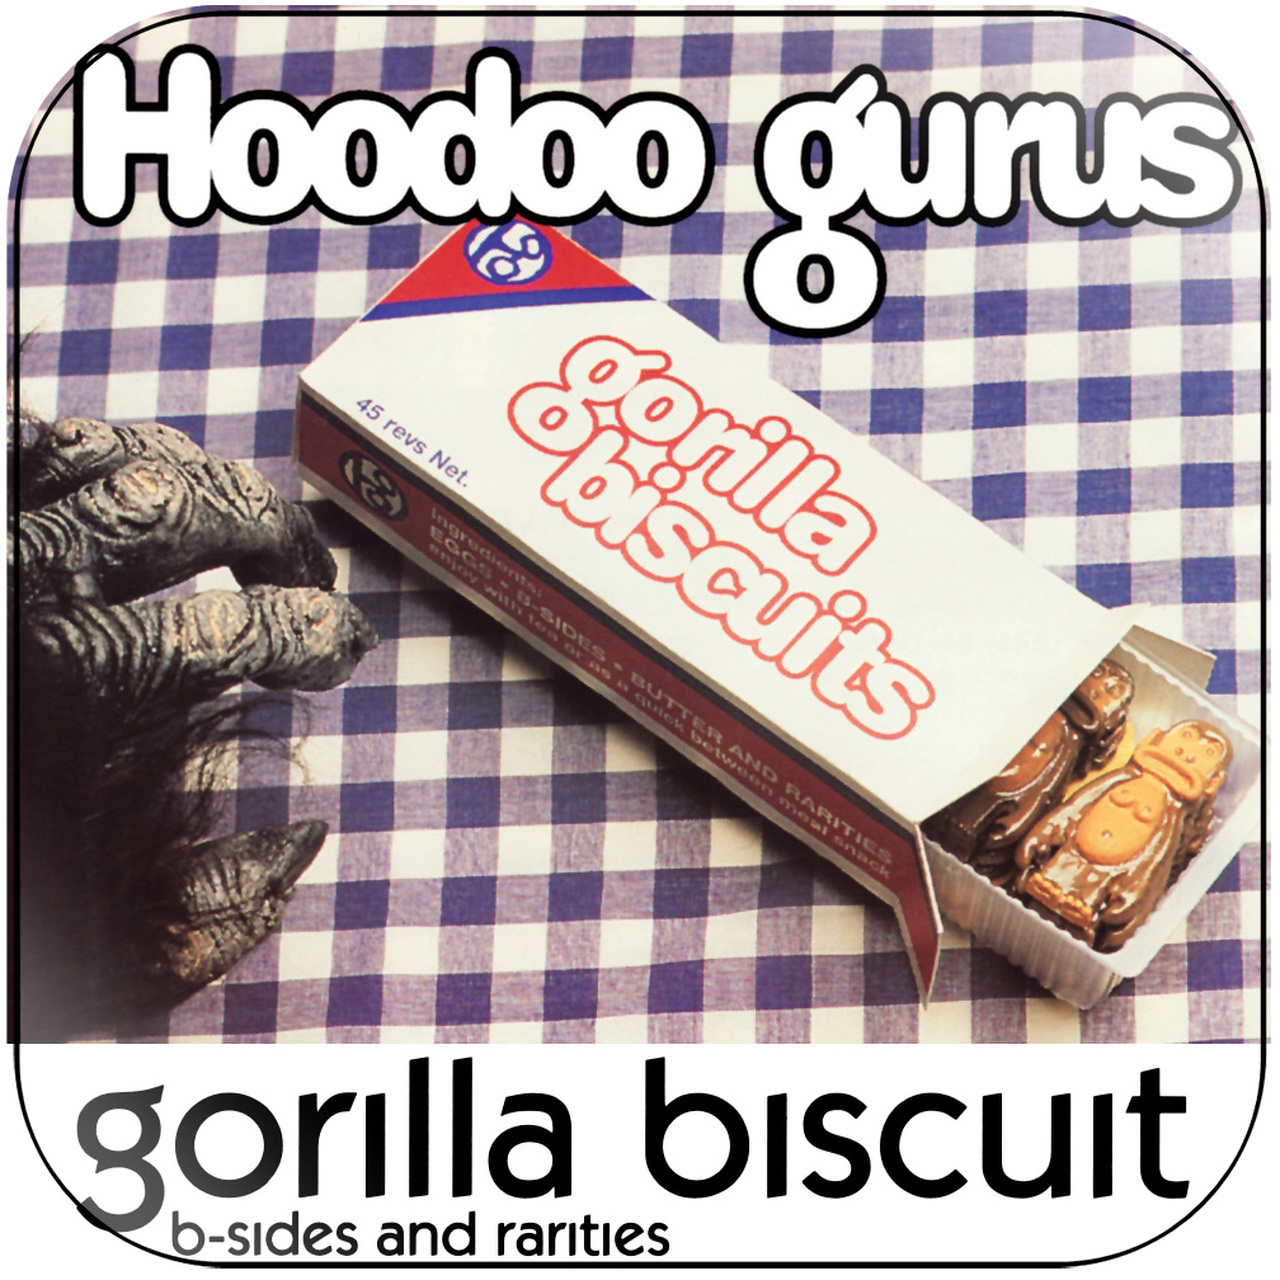 gorilla-biscuit-b-sides-rarities-album-cover-sticker__91770.1539896921